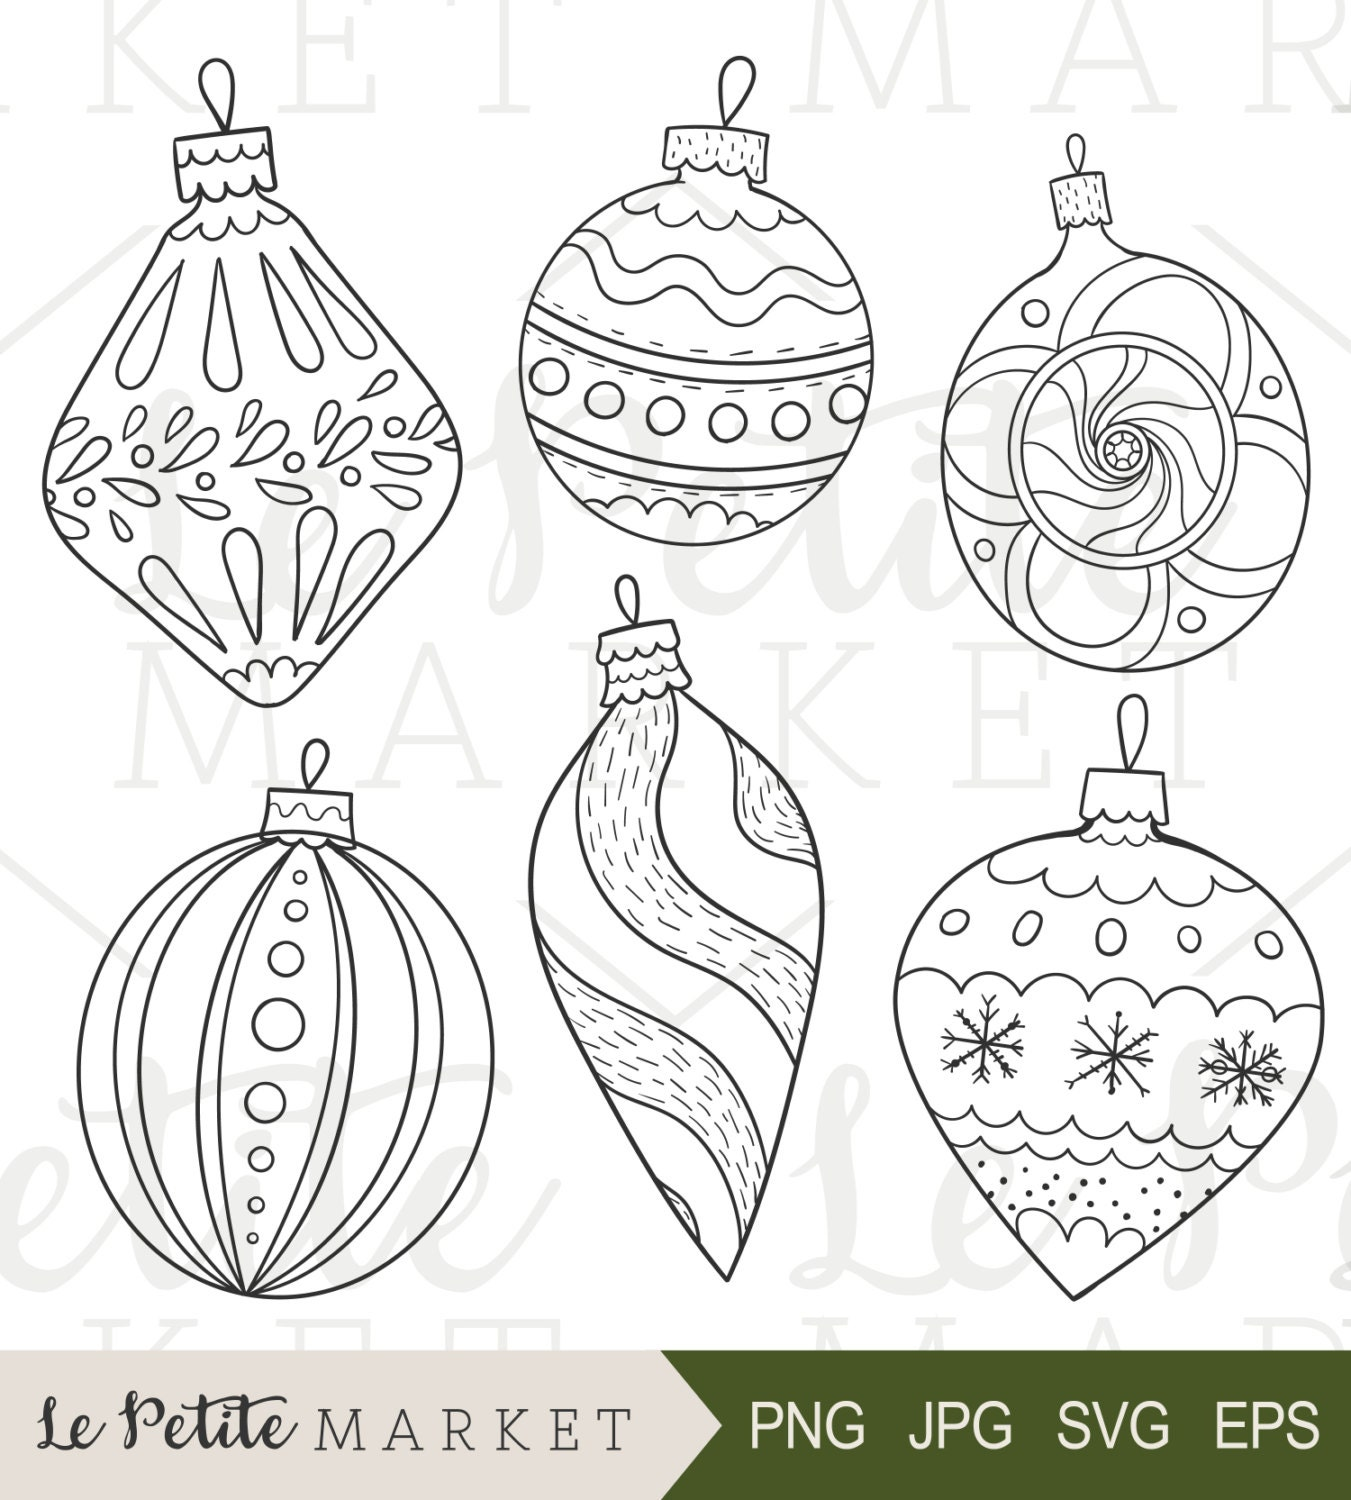 Commercial Christmas Decorations Florida: Hand Drawn Vintage Ornaments Illustrations Holiday